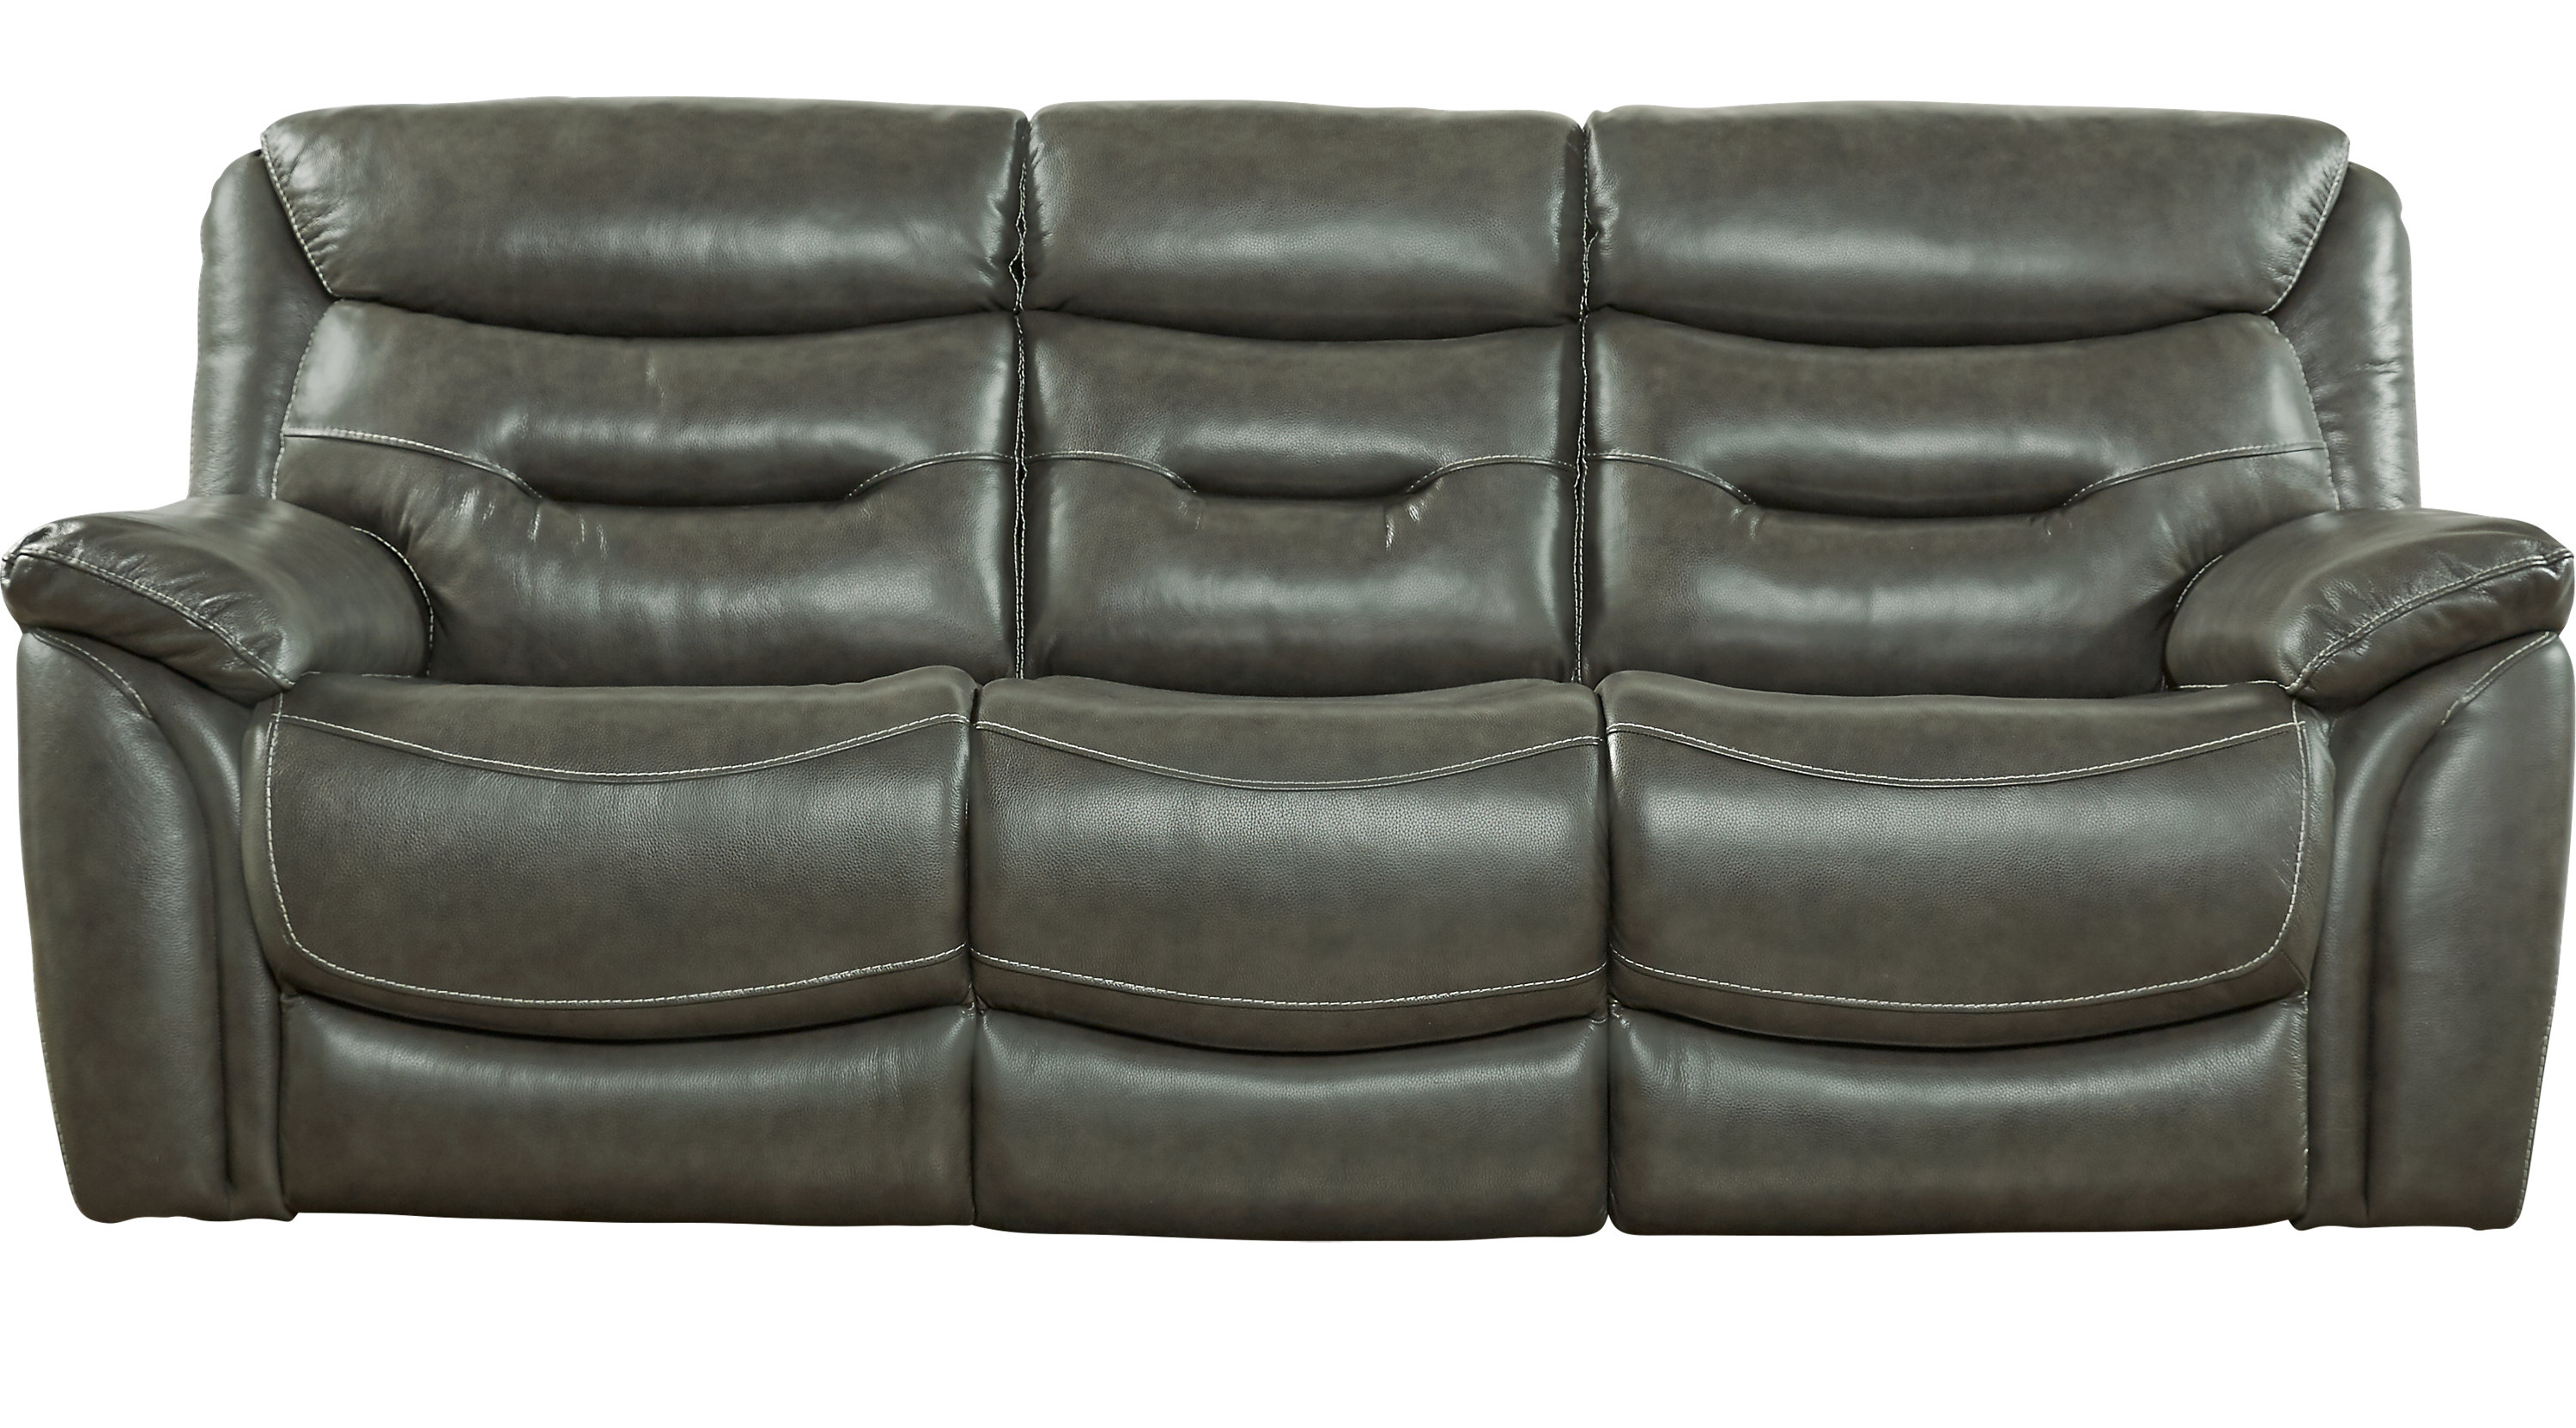 Gray Leather Reclining Sofa